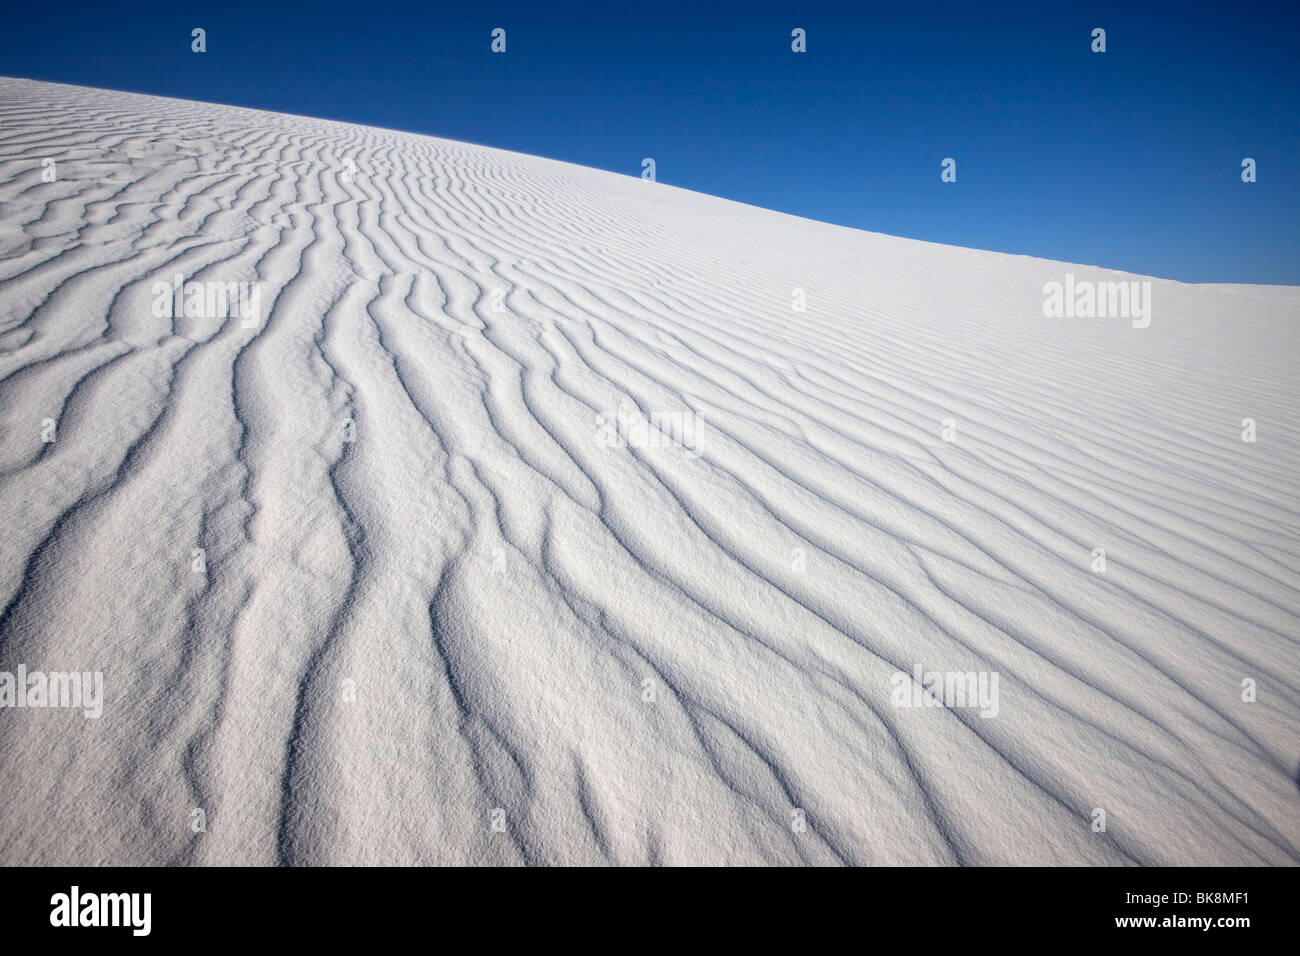 Wind Patterns in Sand, White Sands National Monument, New Mexico - Stock Image